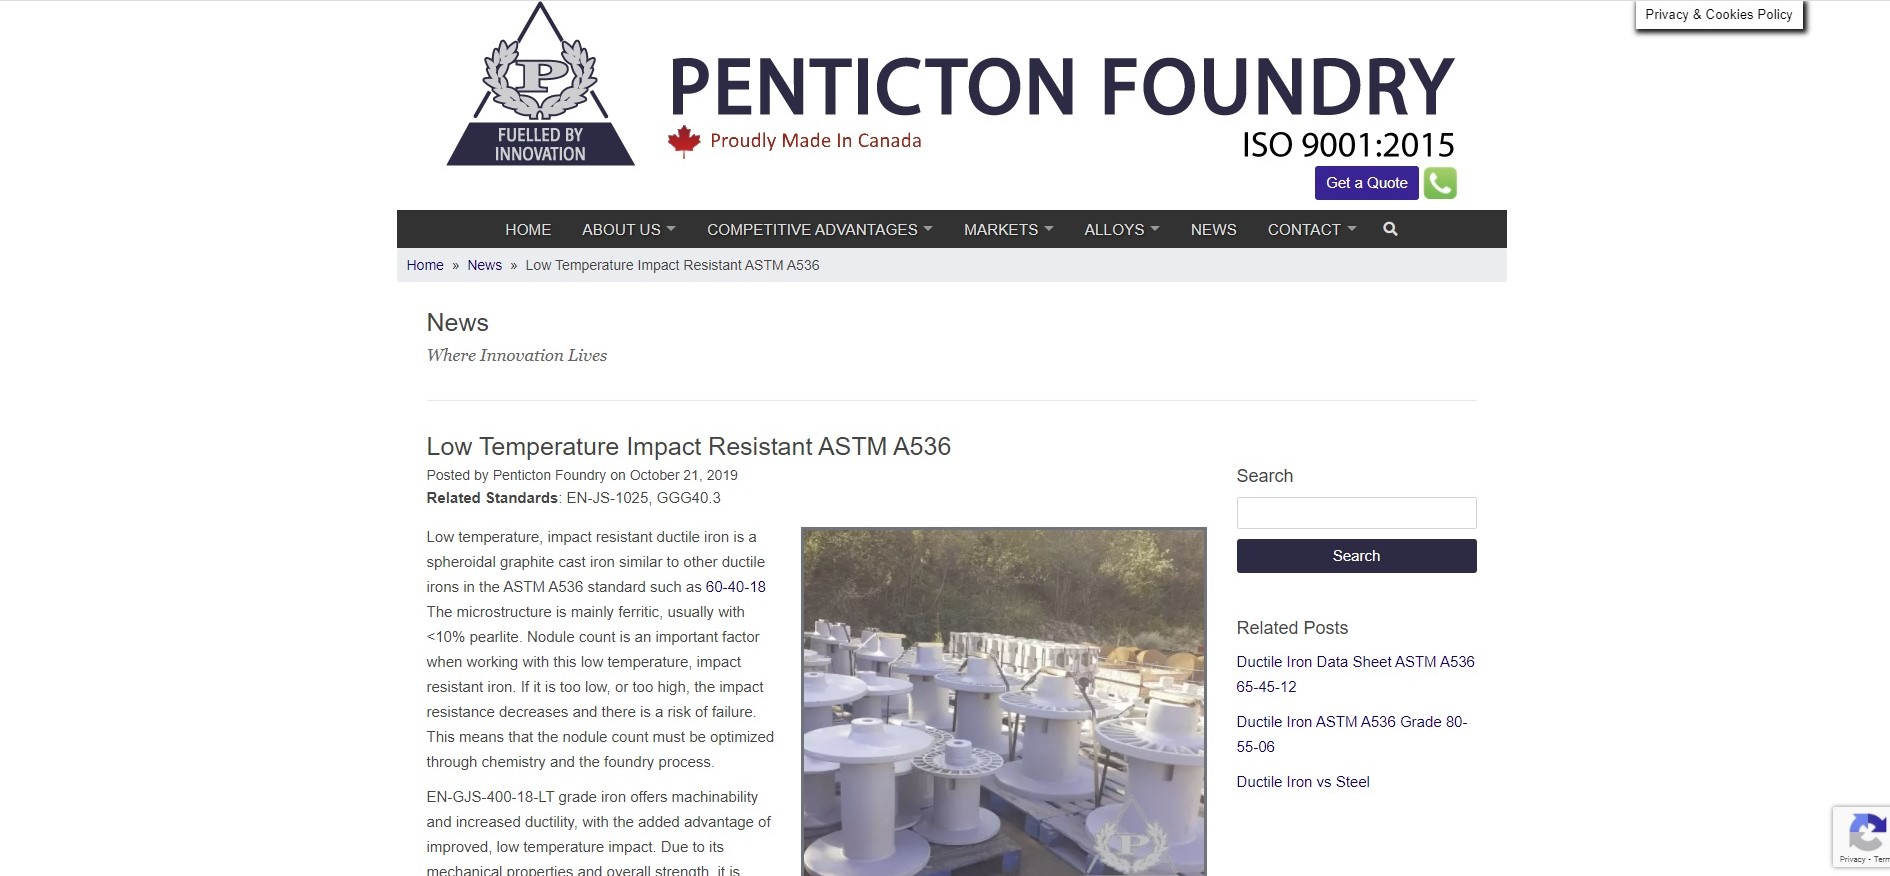 https://www.pentictonfoundry.com/news/low-temperature-impact-resistant-astm-a536/